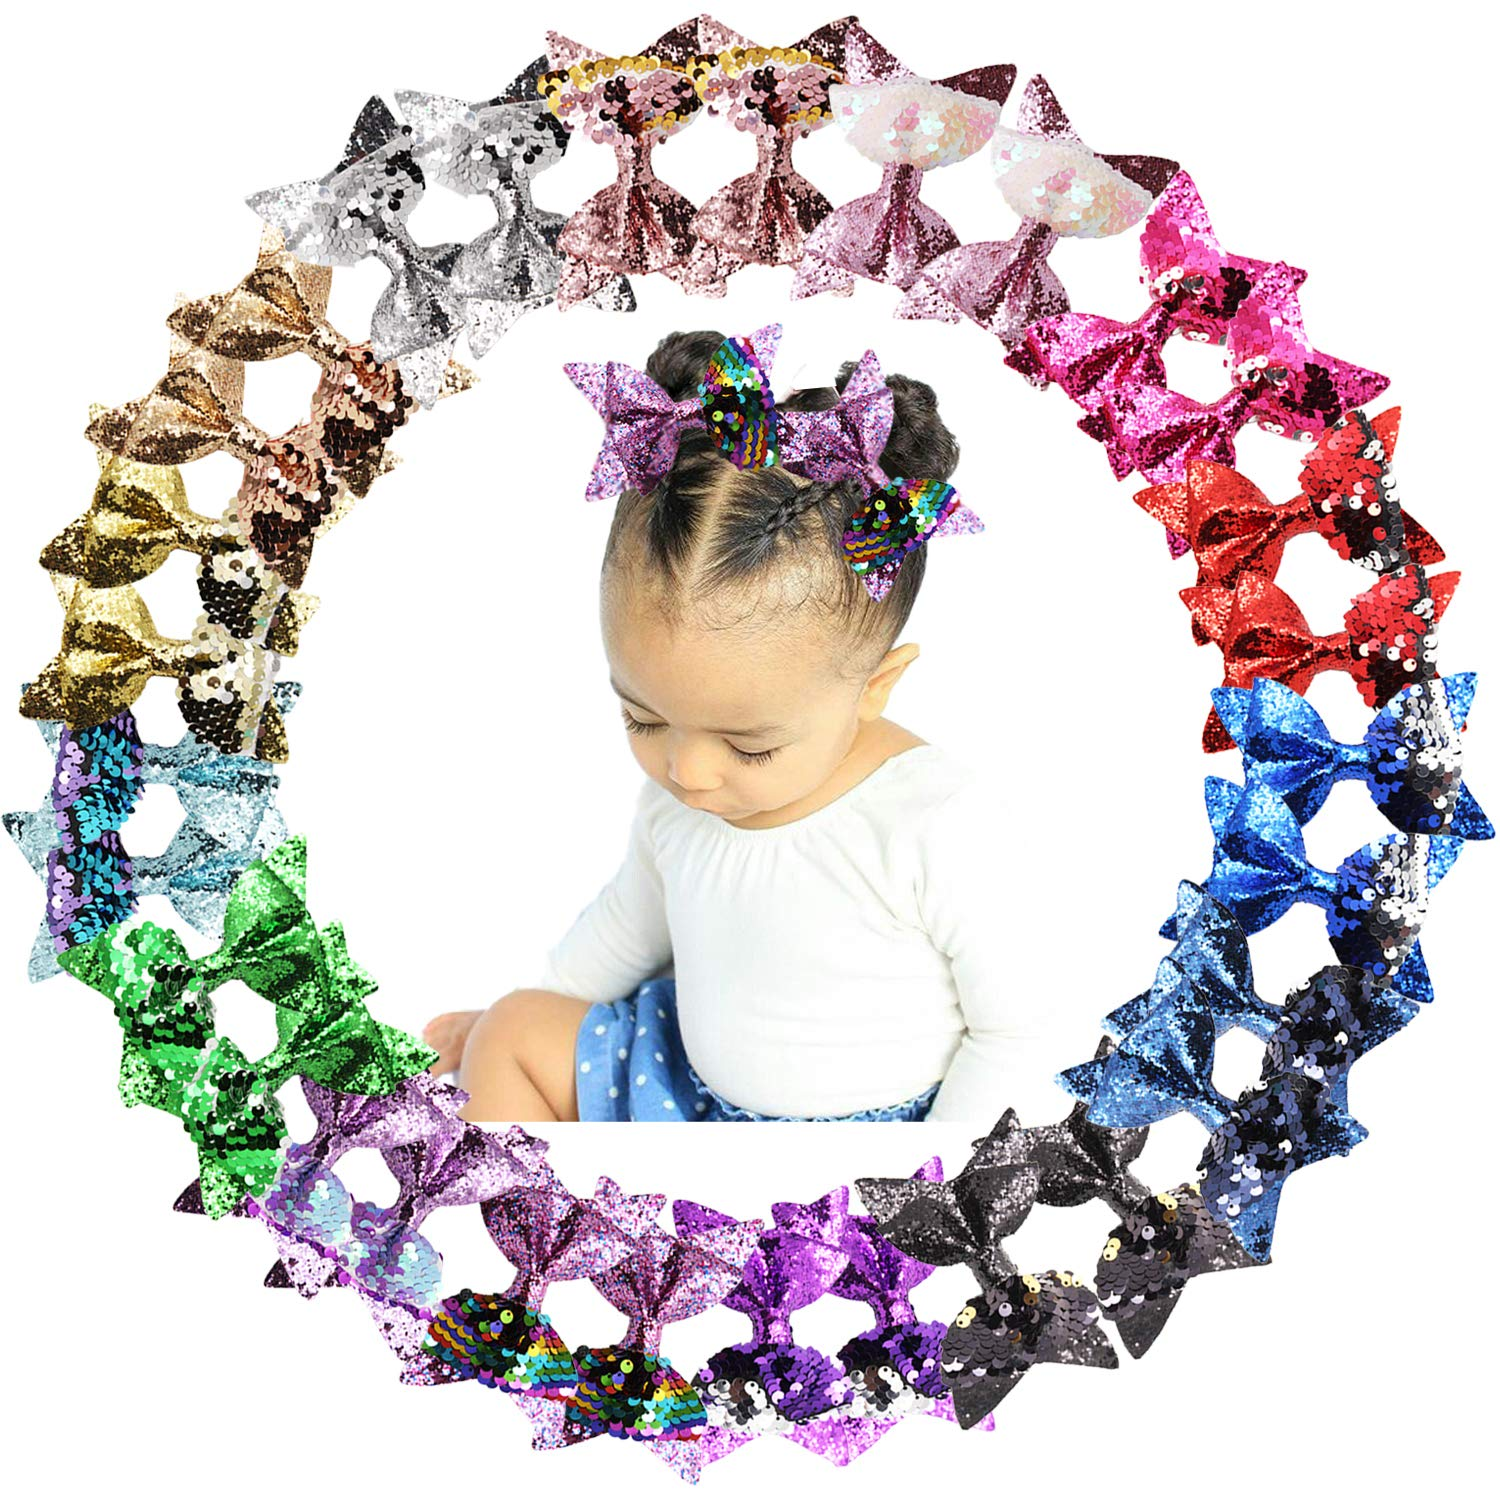 Free Shipping New 30PCS 4Inch Glitter Hair Bows Sequin With Ranking TOP7 Alliga Reversible